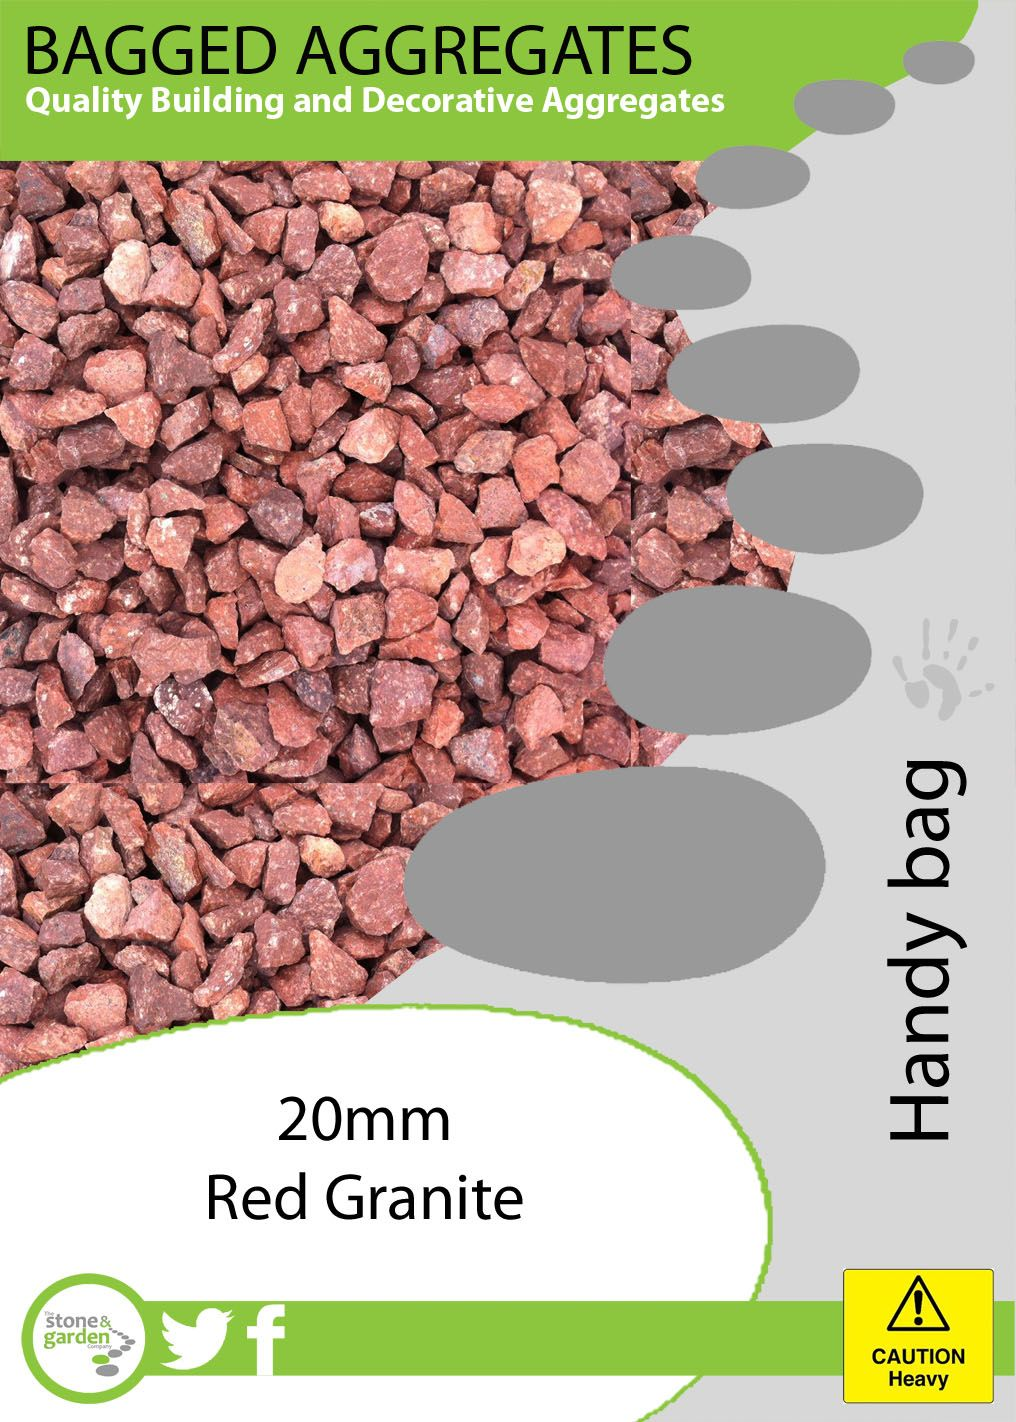 20mm Red Granite Harden Red Lanark Red Cloburn Red Red Gravel Red Stone Red Border Stone Granite Chippings Gra Plum Slate Granite Decorative Aggregates